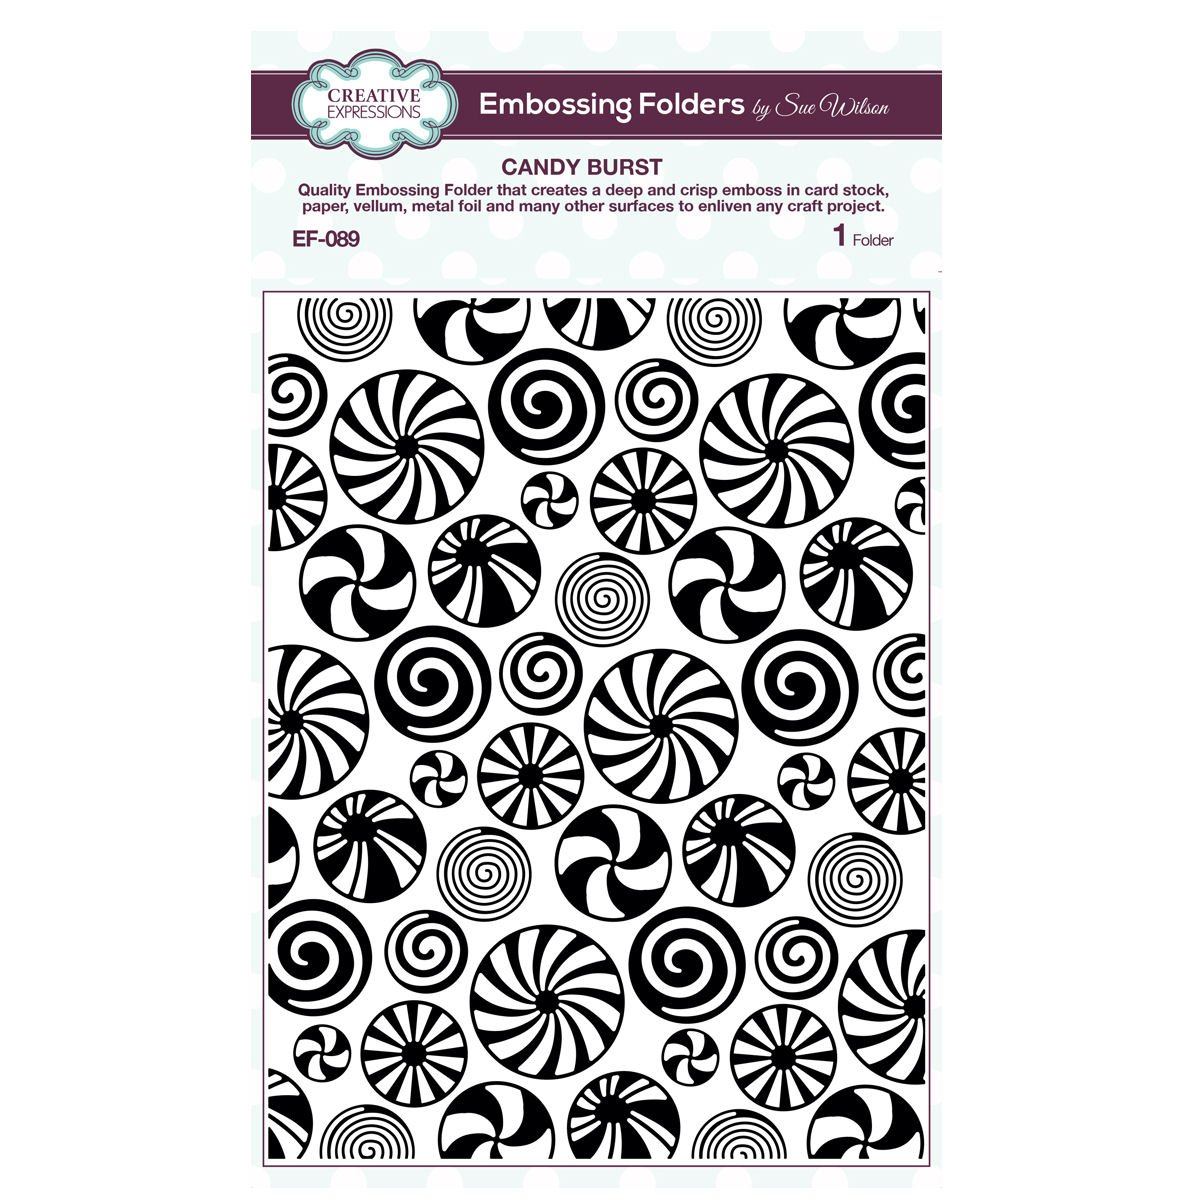 Creative Expressions Sue Wilson EF-089 Embossing Folder 5. 75 x 7. 5 - Candy Burst